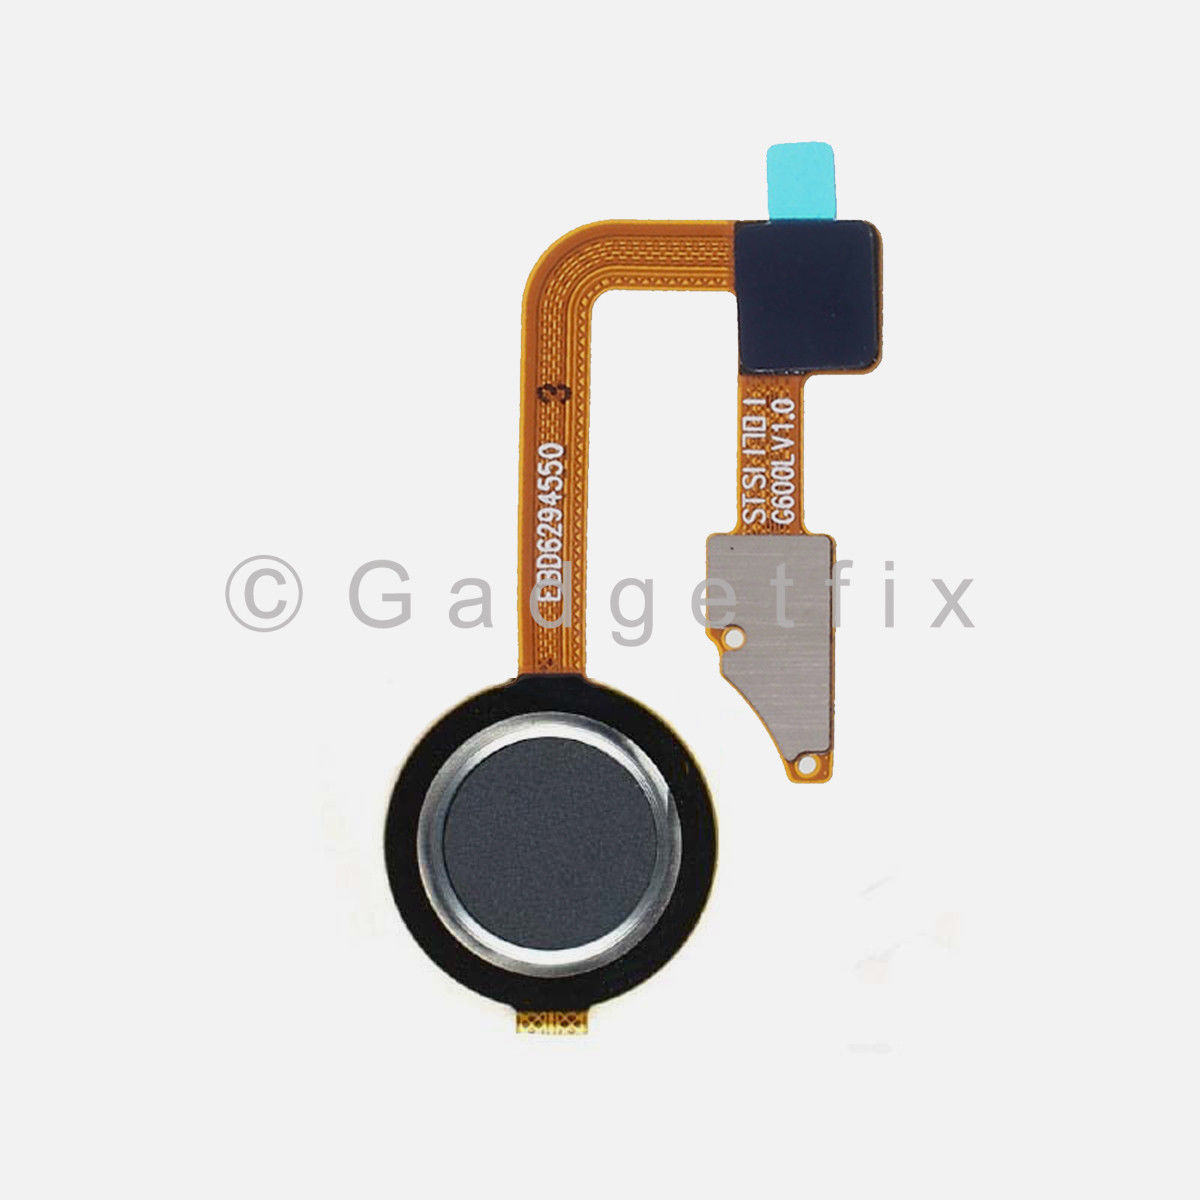 Platinum LG G6 H870 H871 H872 Power Home Button Fingerprint Sensor Flex Cable